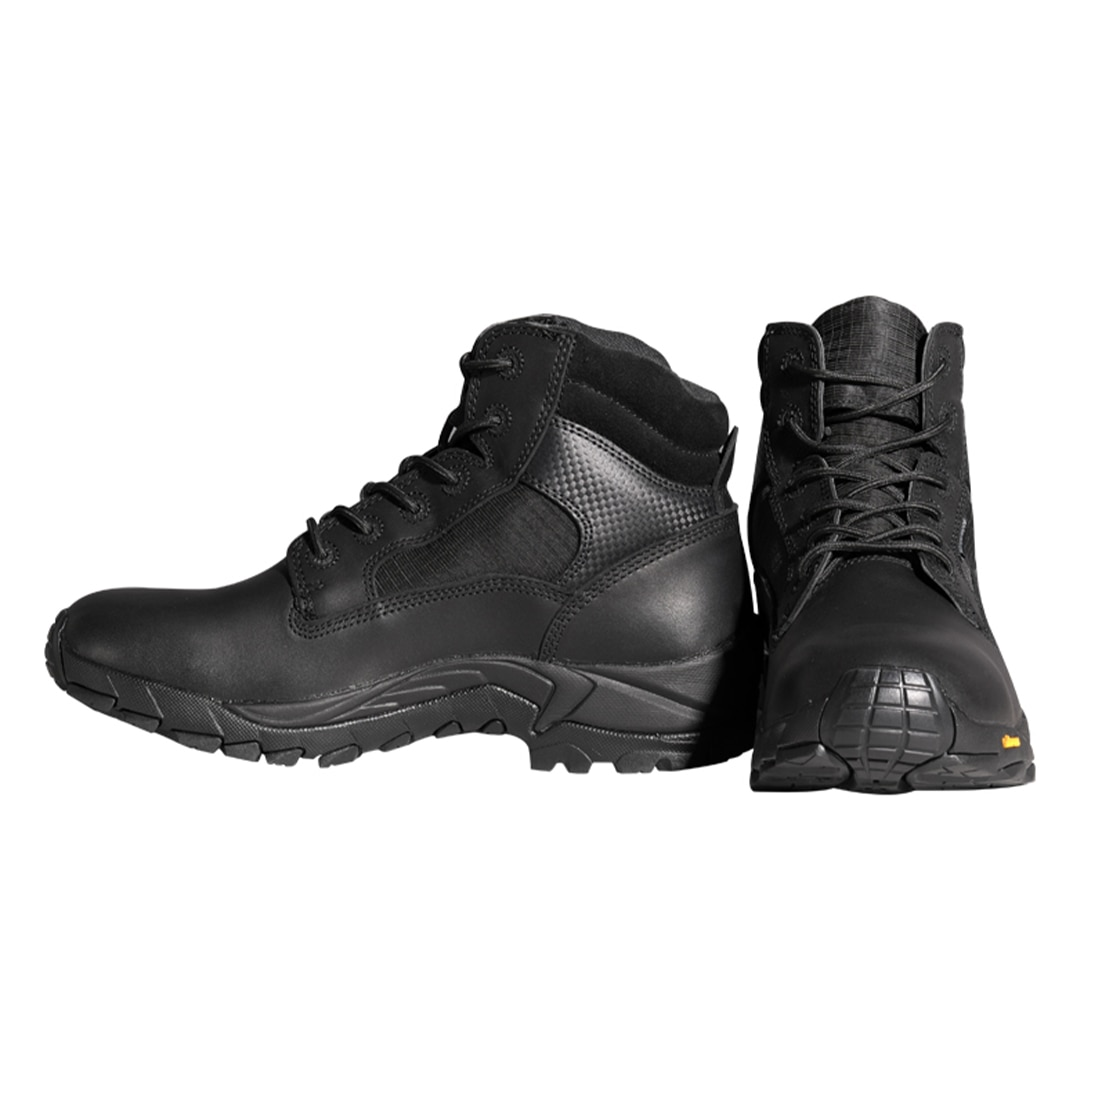 Workerkit 6-inch Non-slip Tactical Combat Boots Outdoor Hunting Hiking Climbing Boots for Airsoft